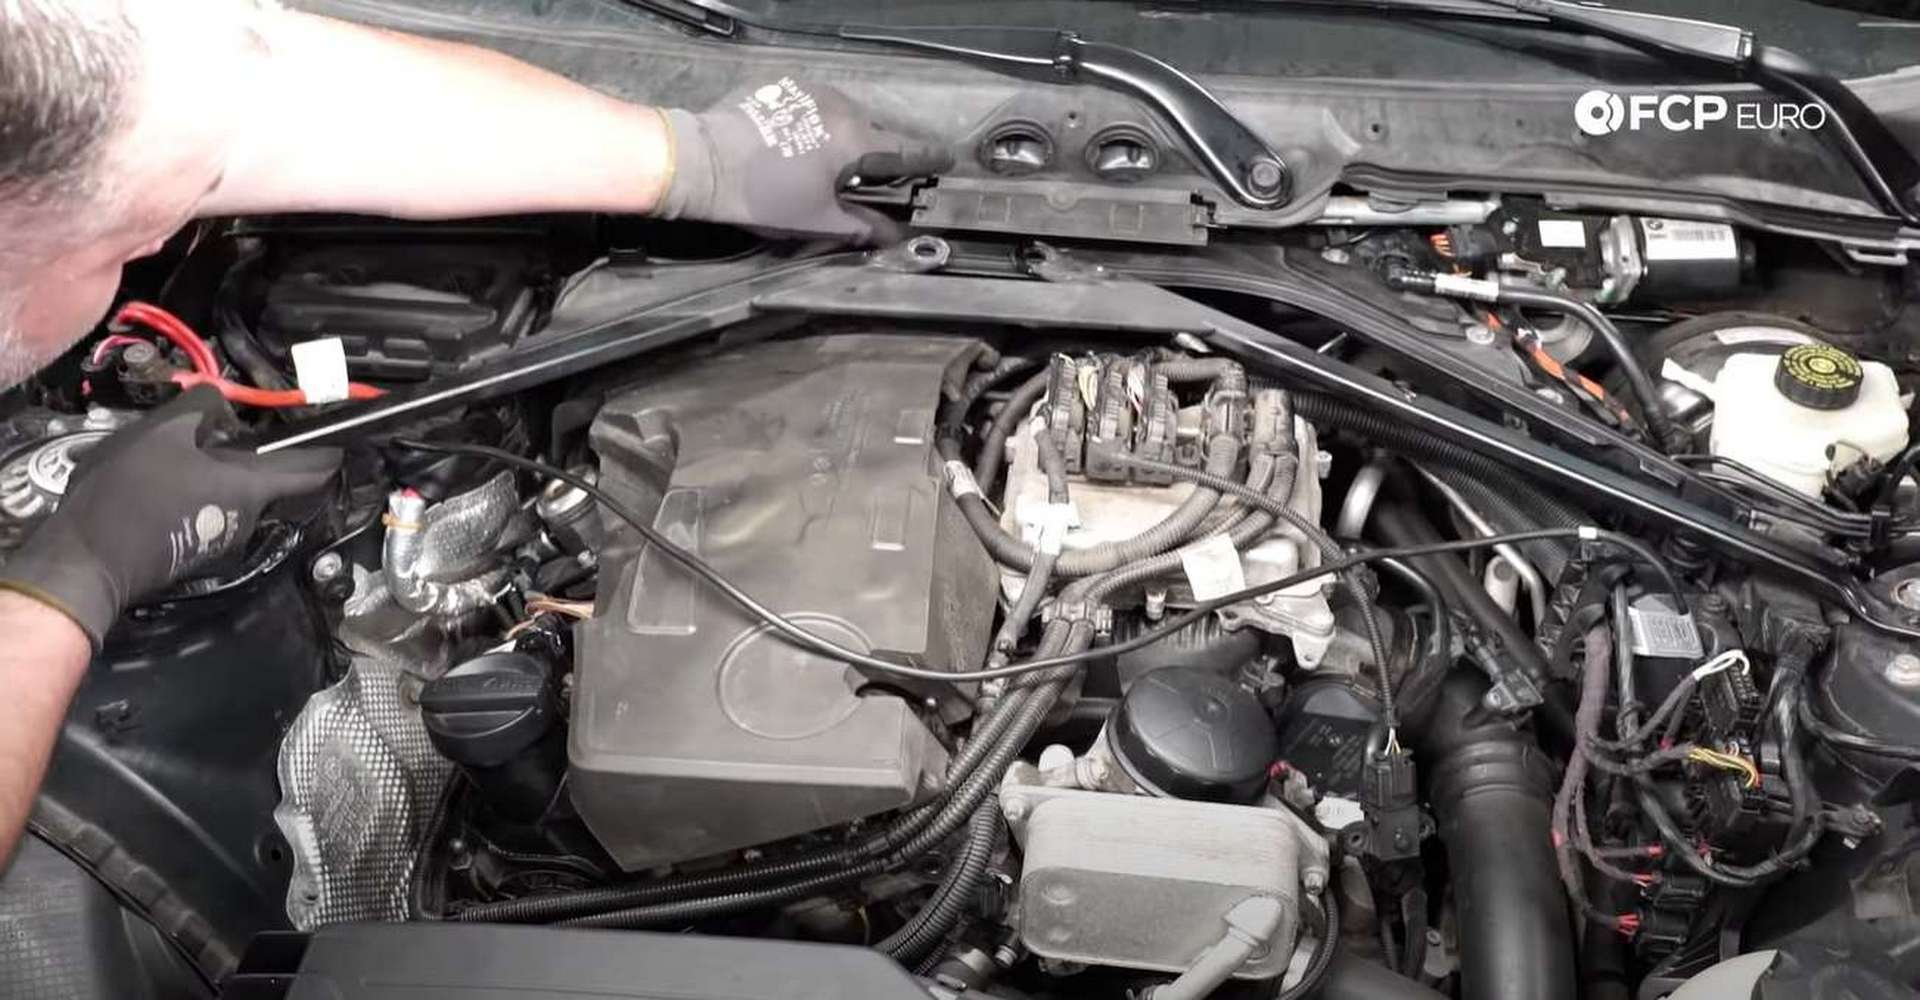 41-DIY-BMW-F30-Valve-Cover-Replacement_Refitting-Plastics